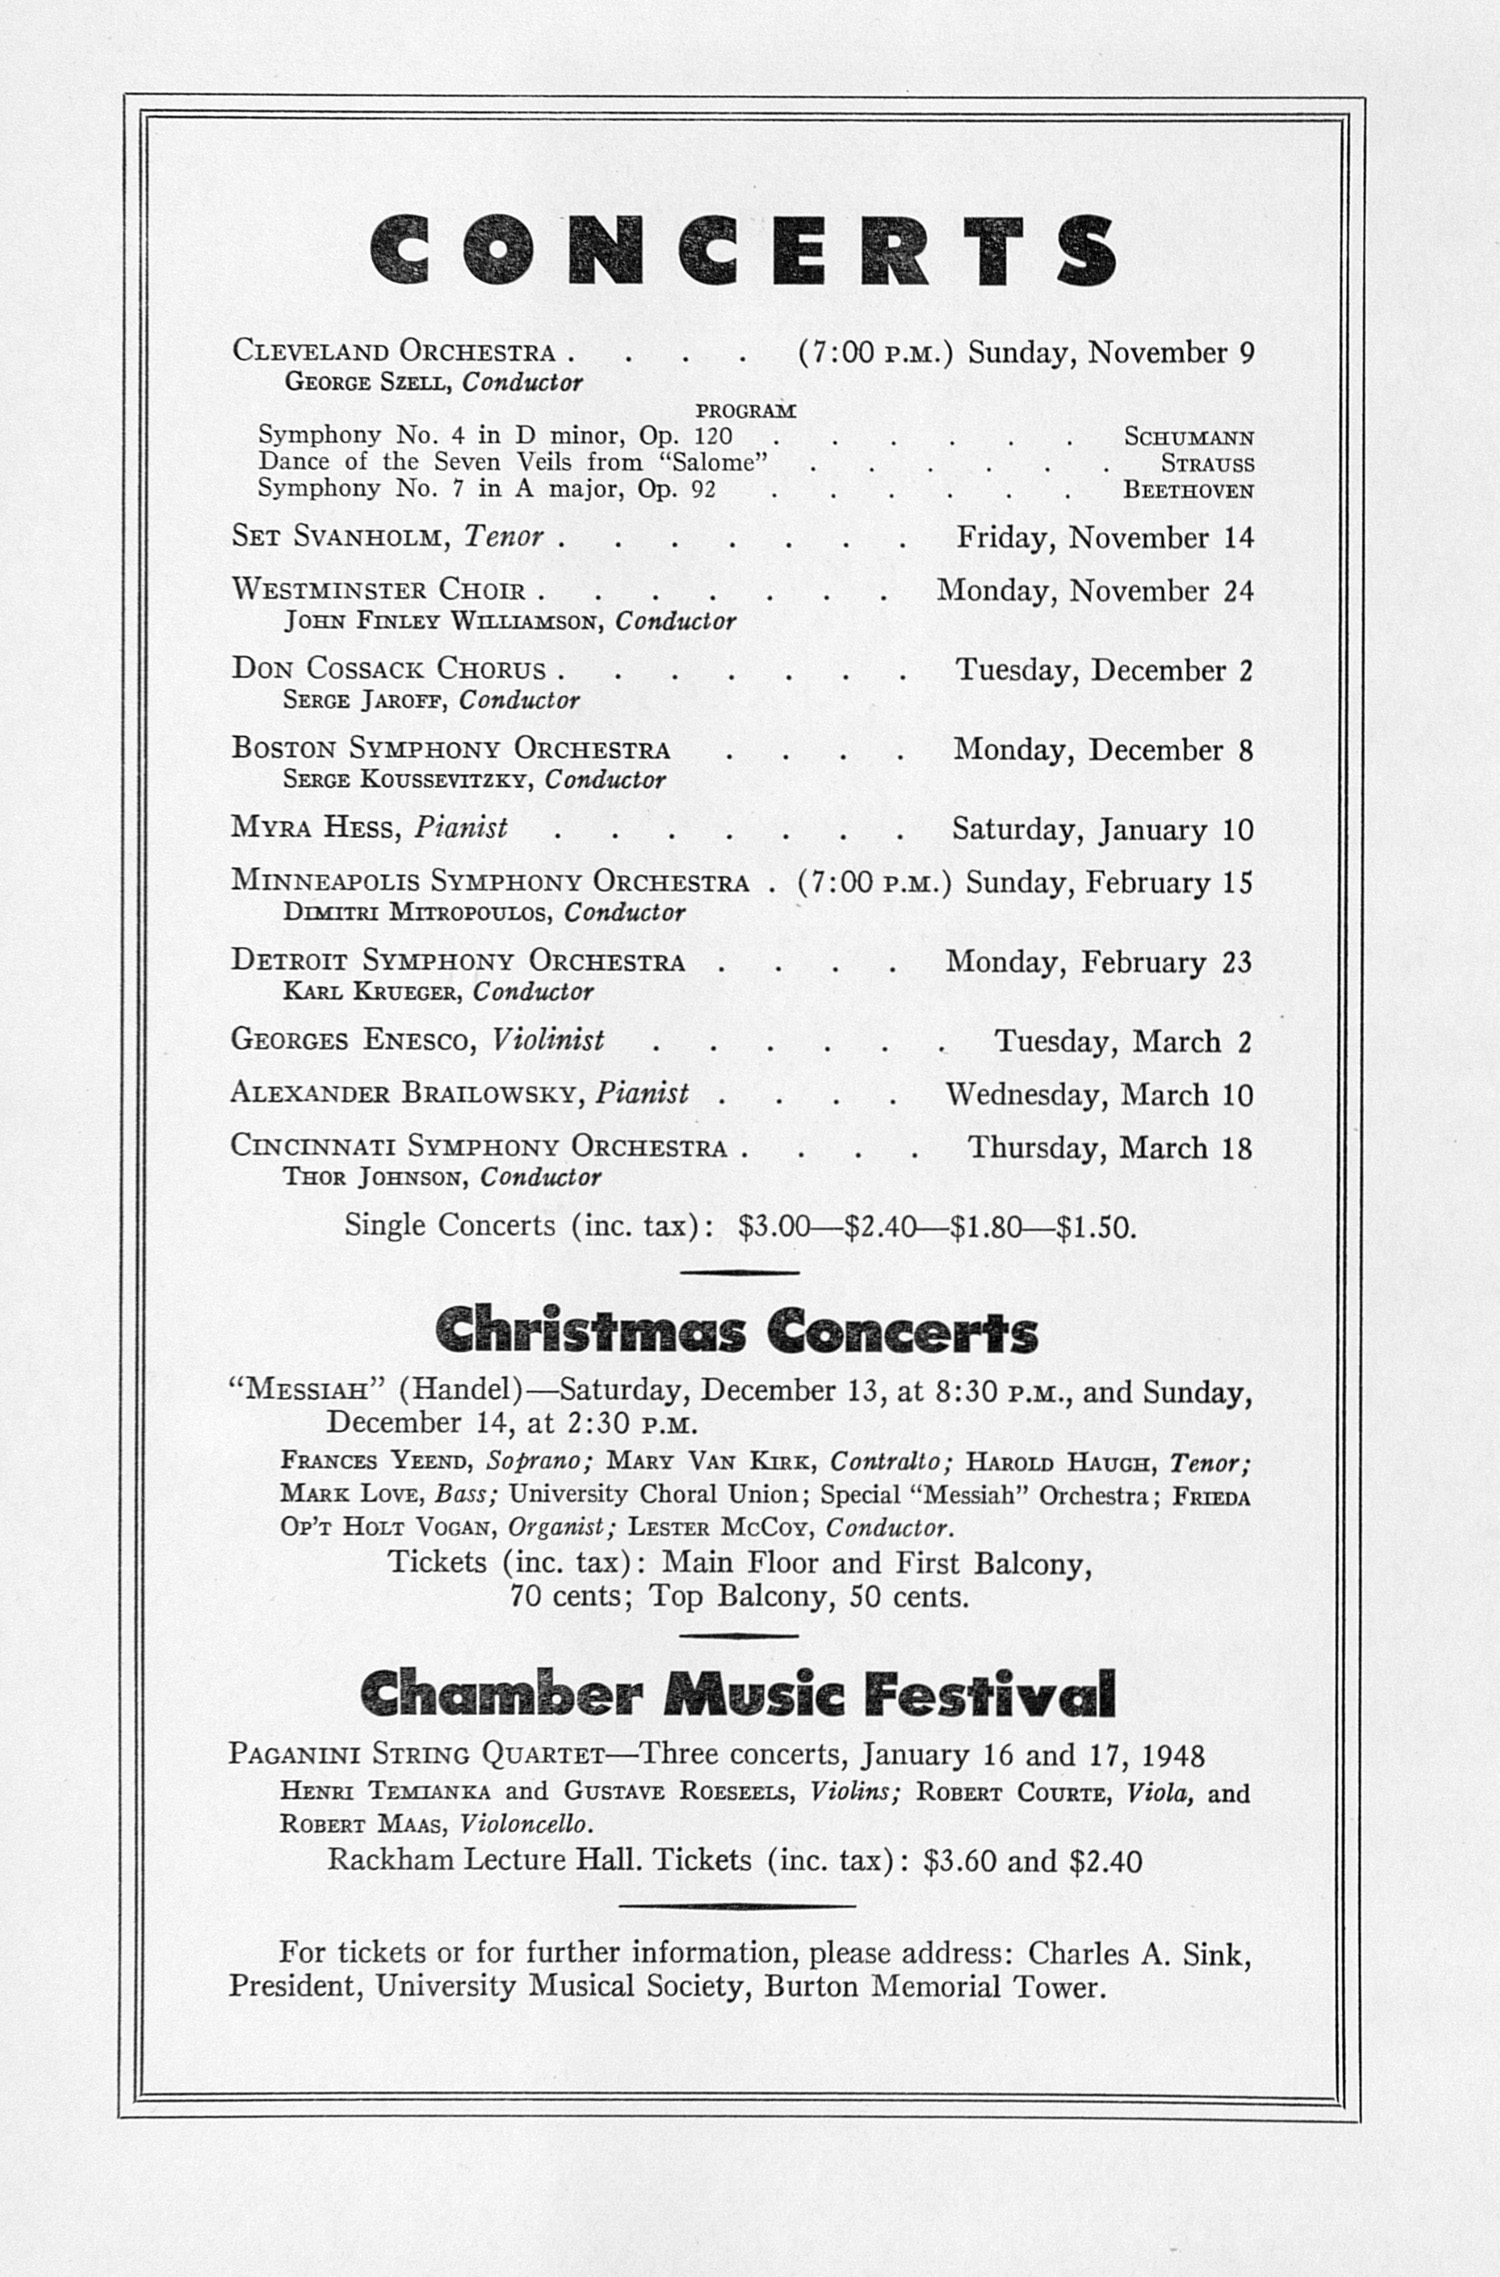 UMS Concert Program, November 4, 1947: Sixty-ninth Annual Choral Union Concert Series -- Daniel Ericourt image